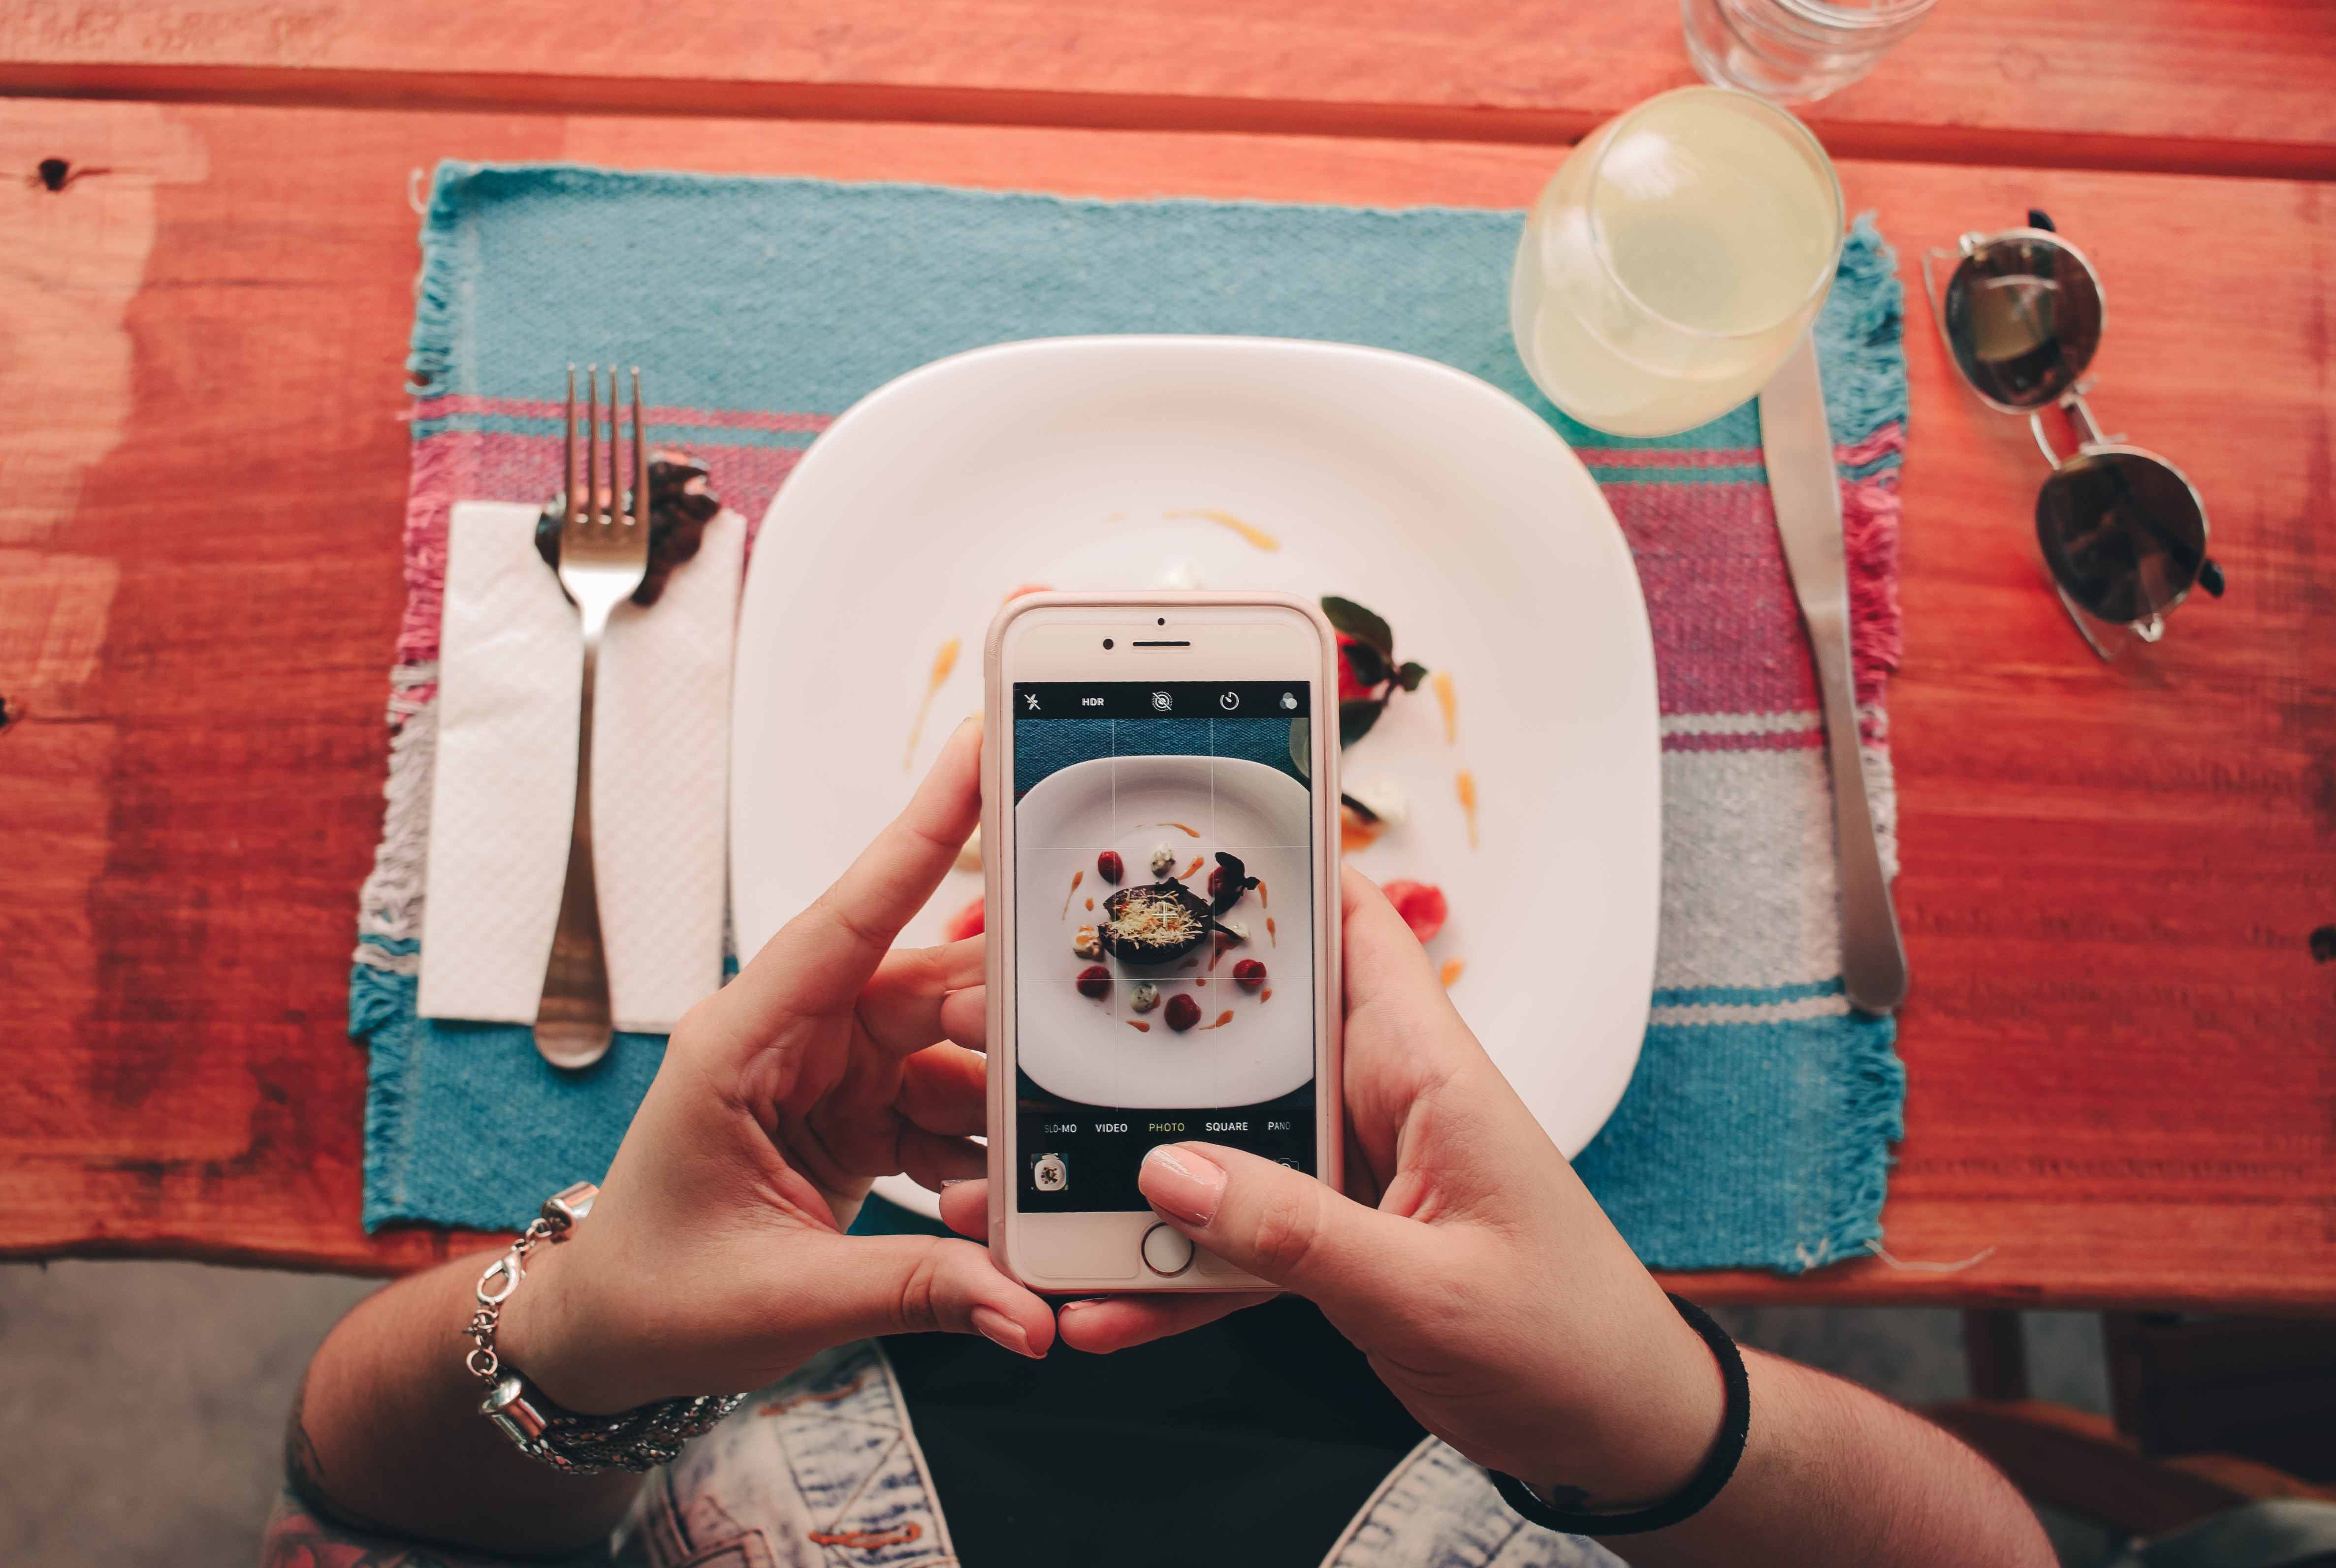 Millenials and their love for Insta-worthy foods.